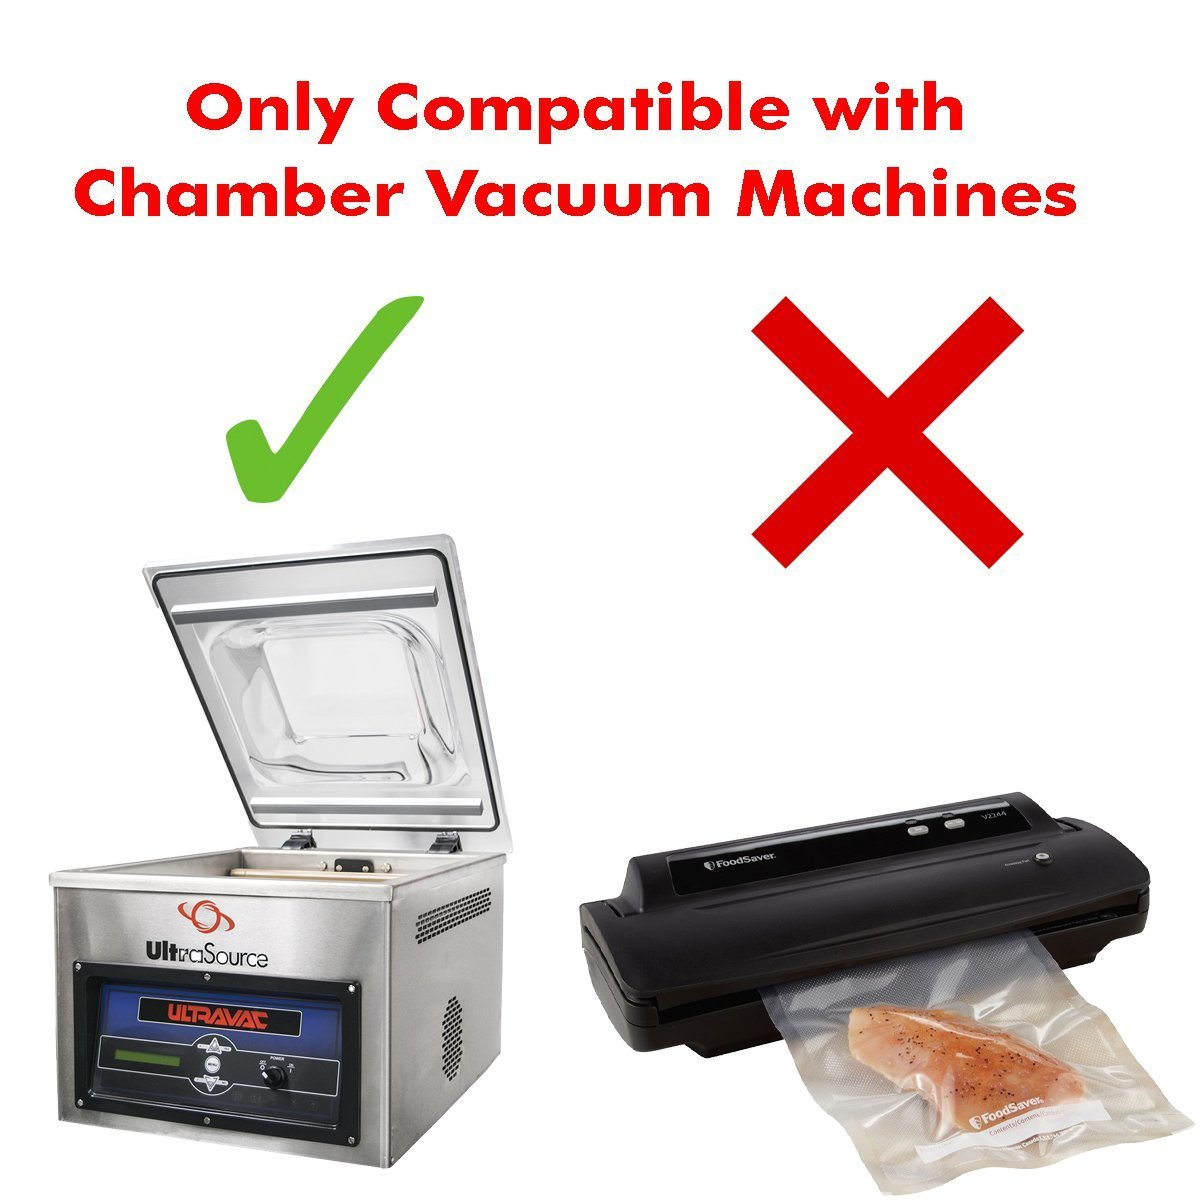 UltraSource Vacuum Chamber Pouches, 3 mil, 10'' x 18'' (Pack of 500) by UltraSource (Image #2)